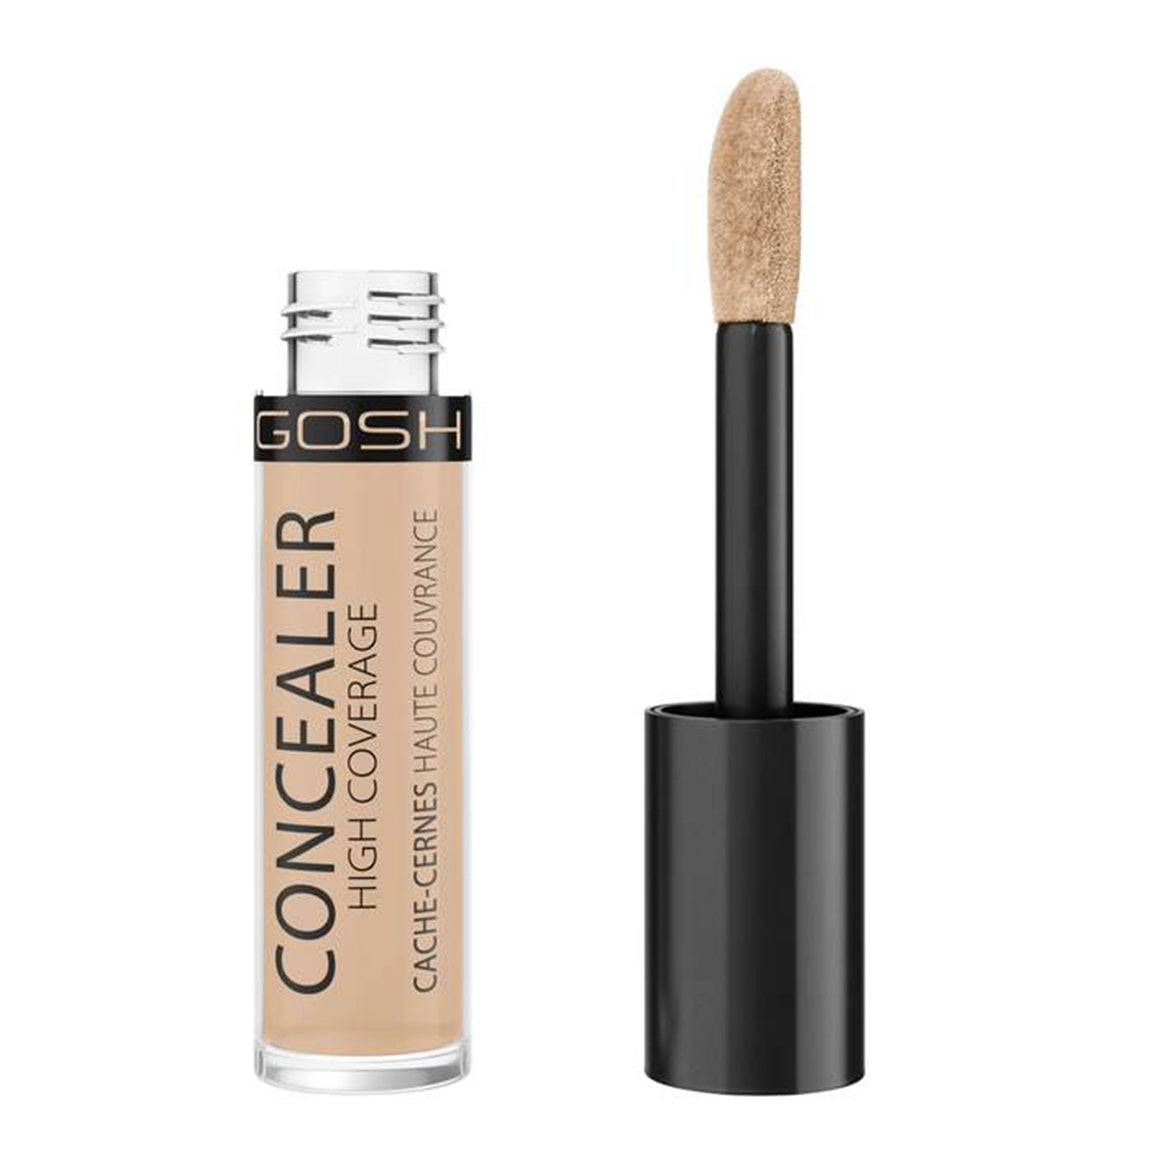 Gosh High Coverage Concealer - 003